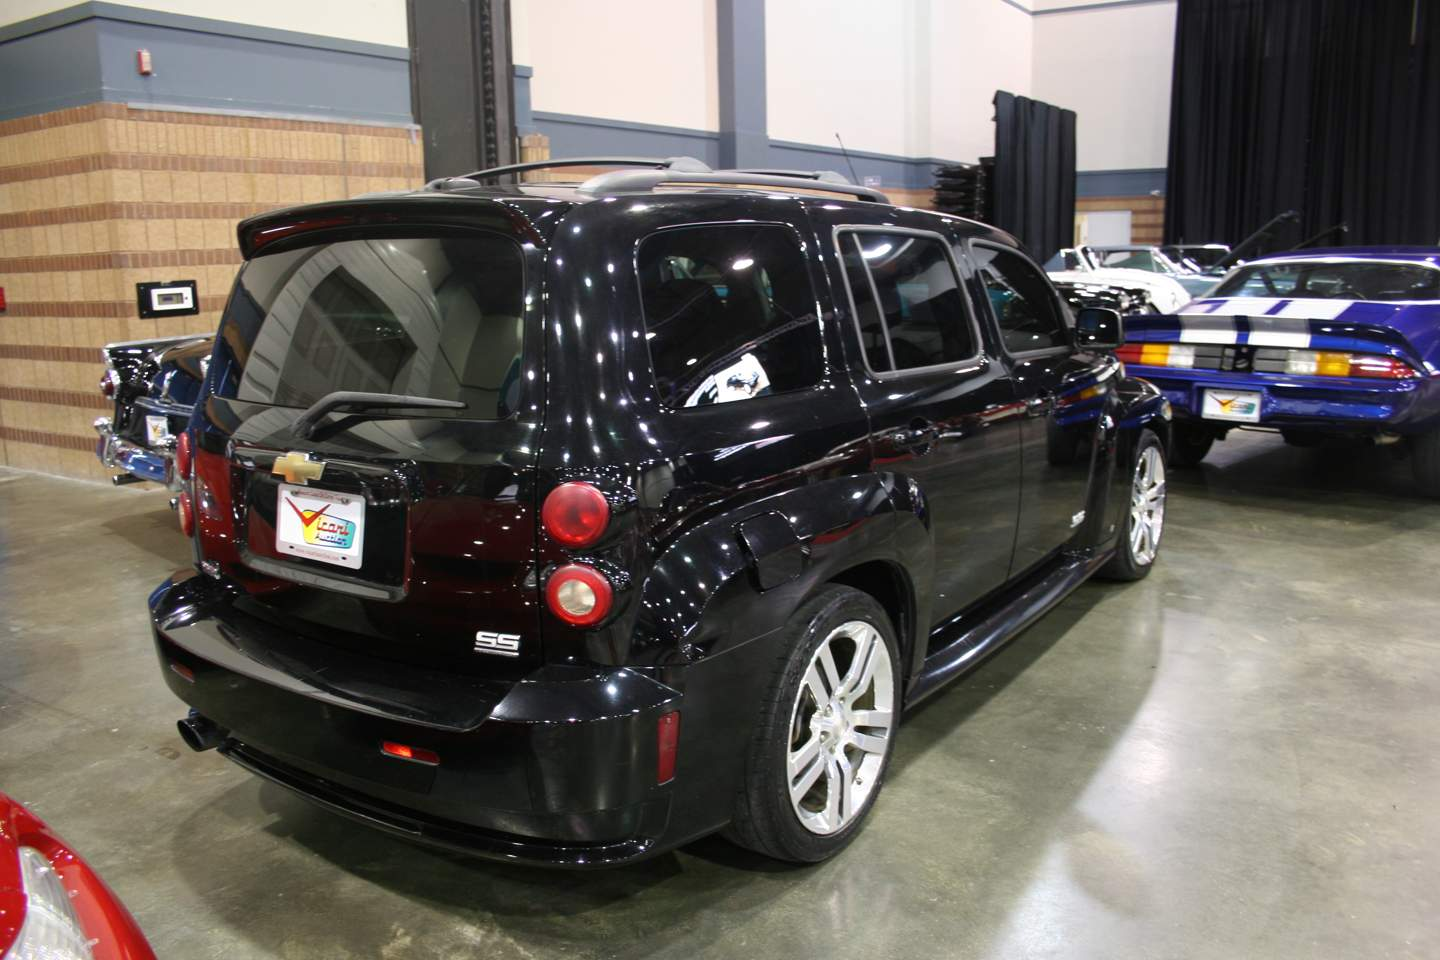 10th Image of a 2008 CHEVROLET HHR SS